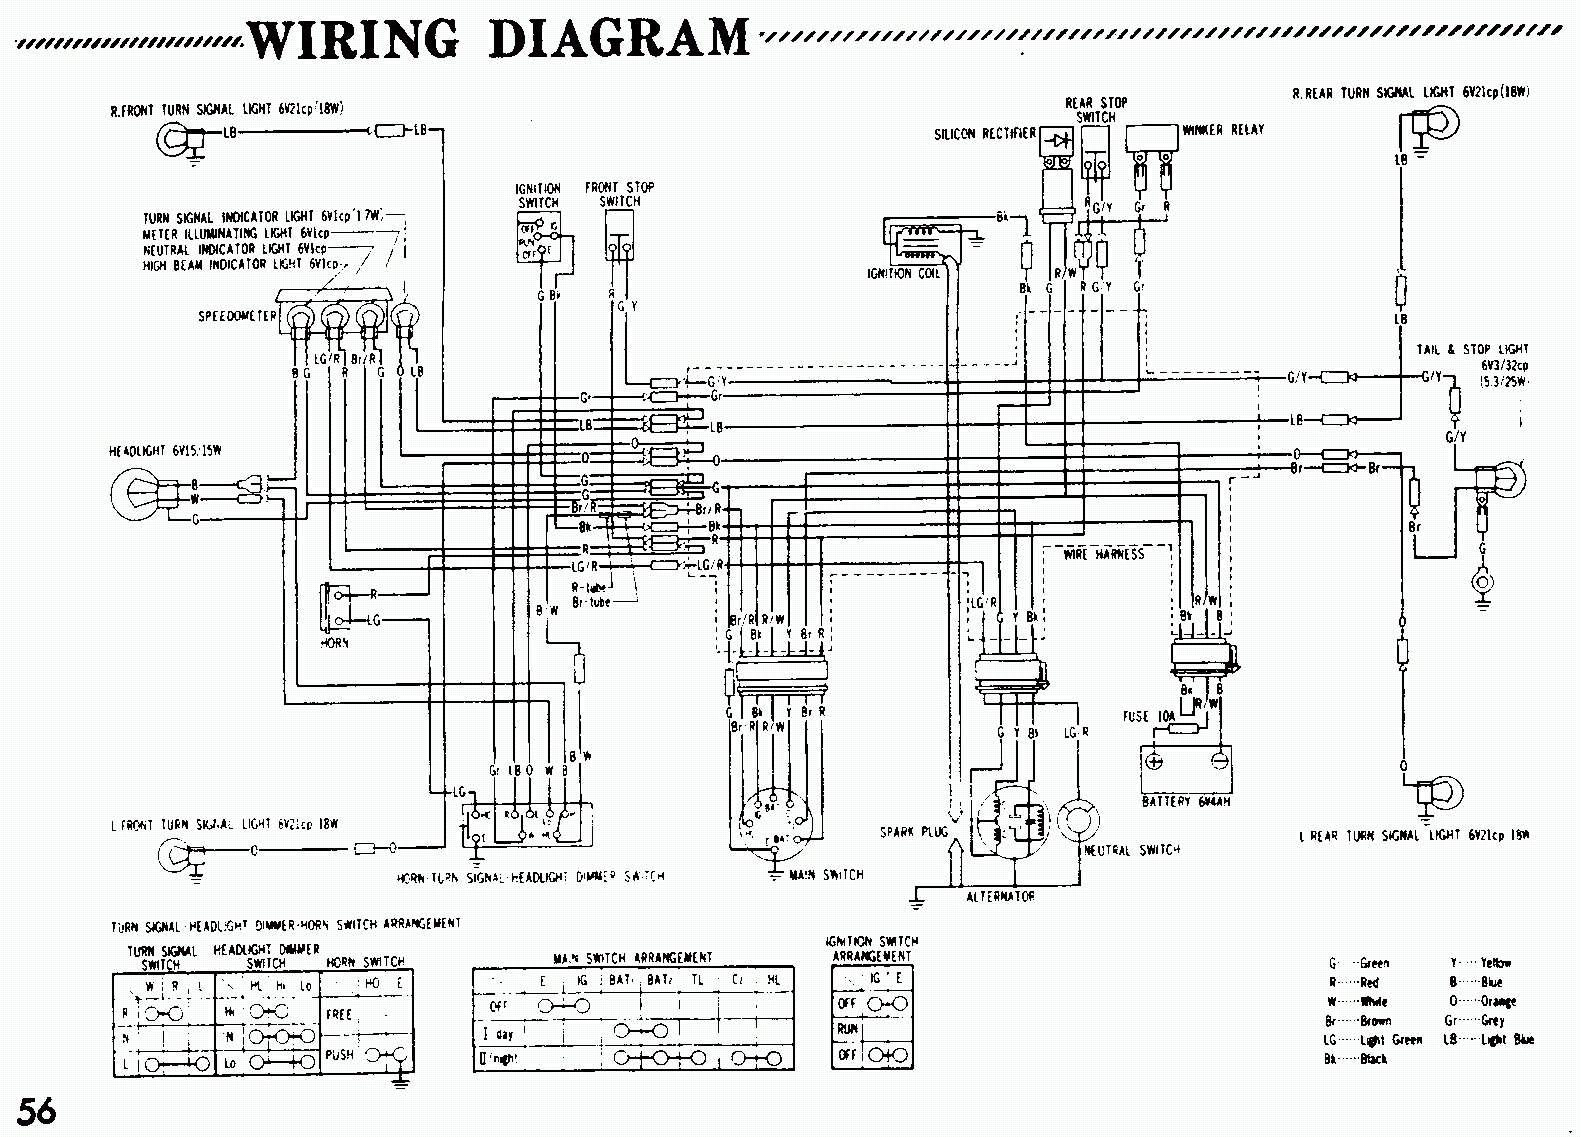 1970 honda ct70 wiring diagram lzk gallery